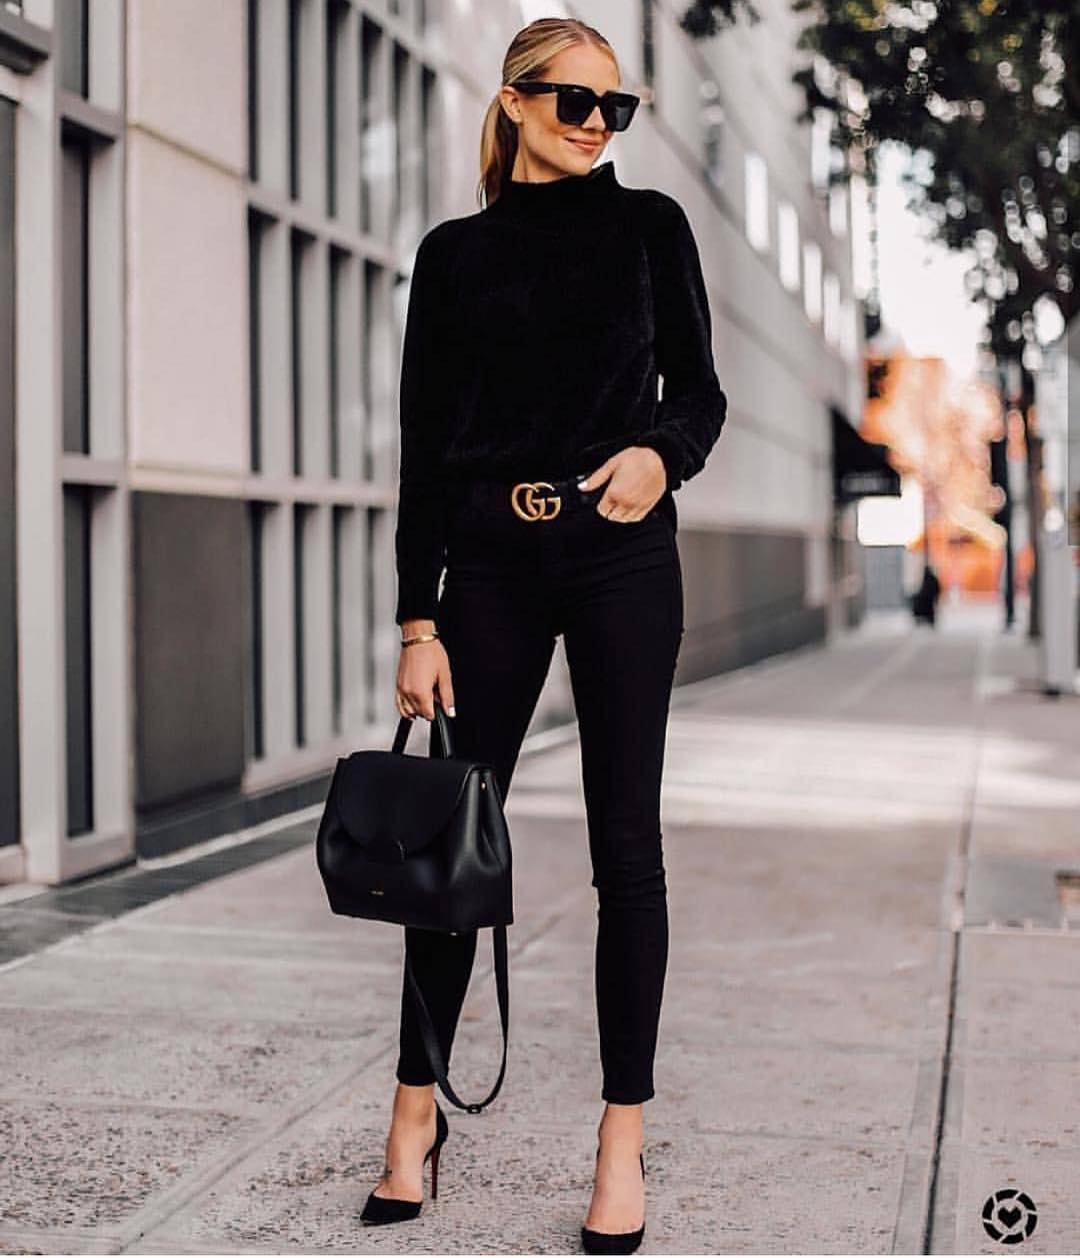 All Black Outfit For Fall: Velour Sweater, Skinny Jeans And Black Heels 2020